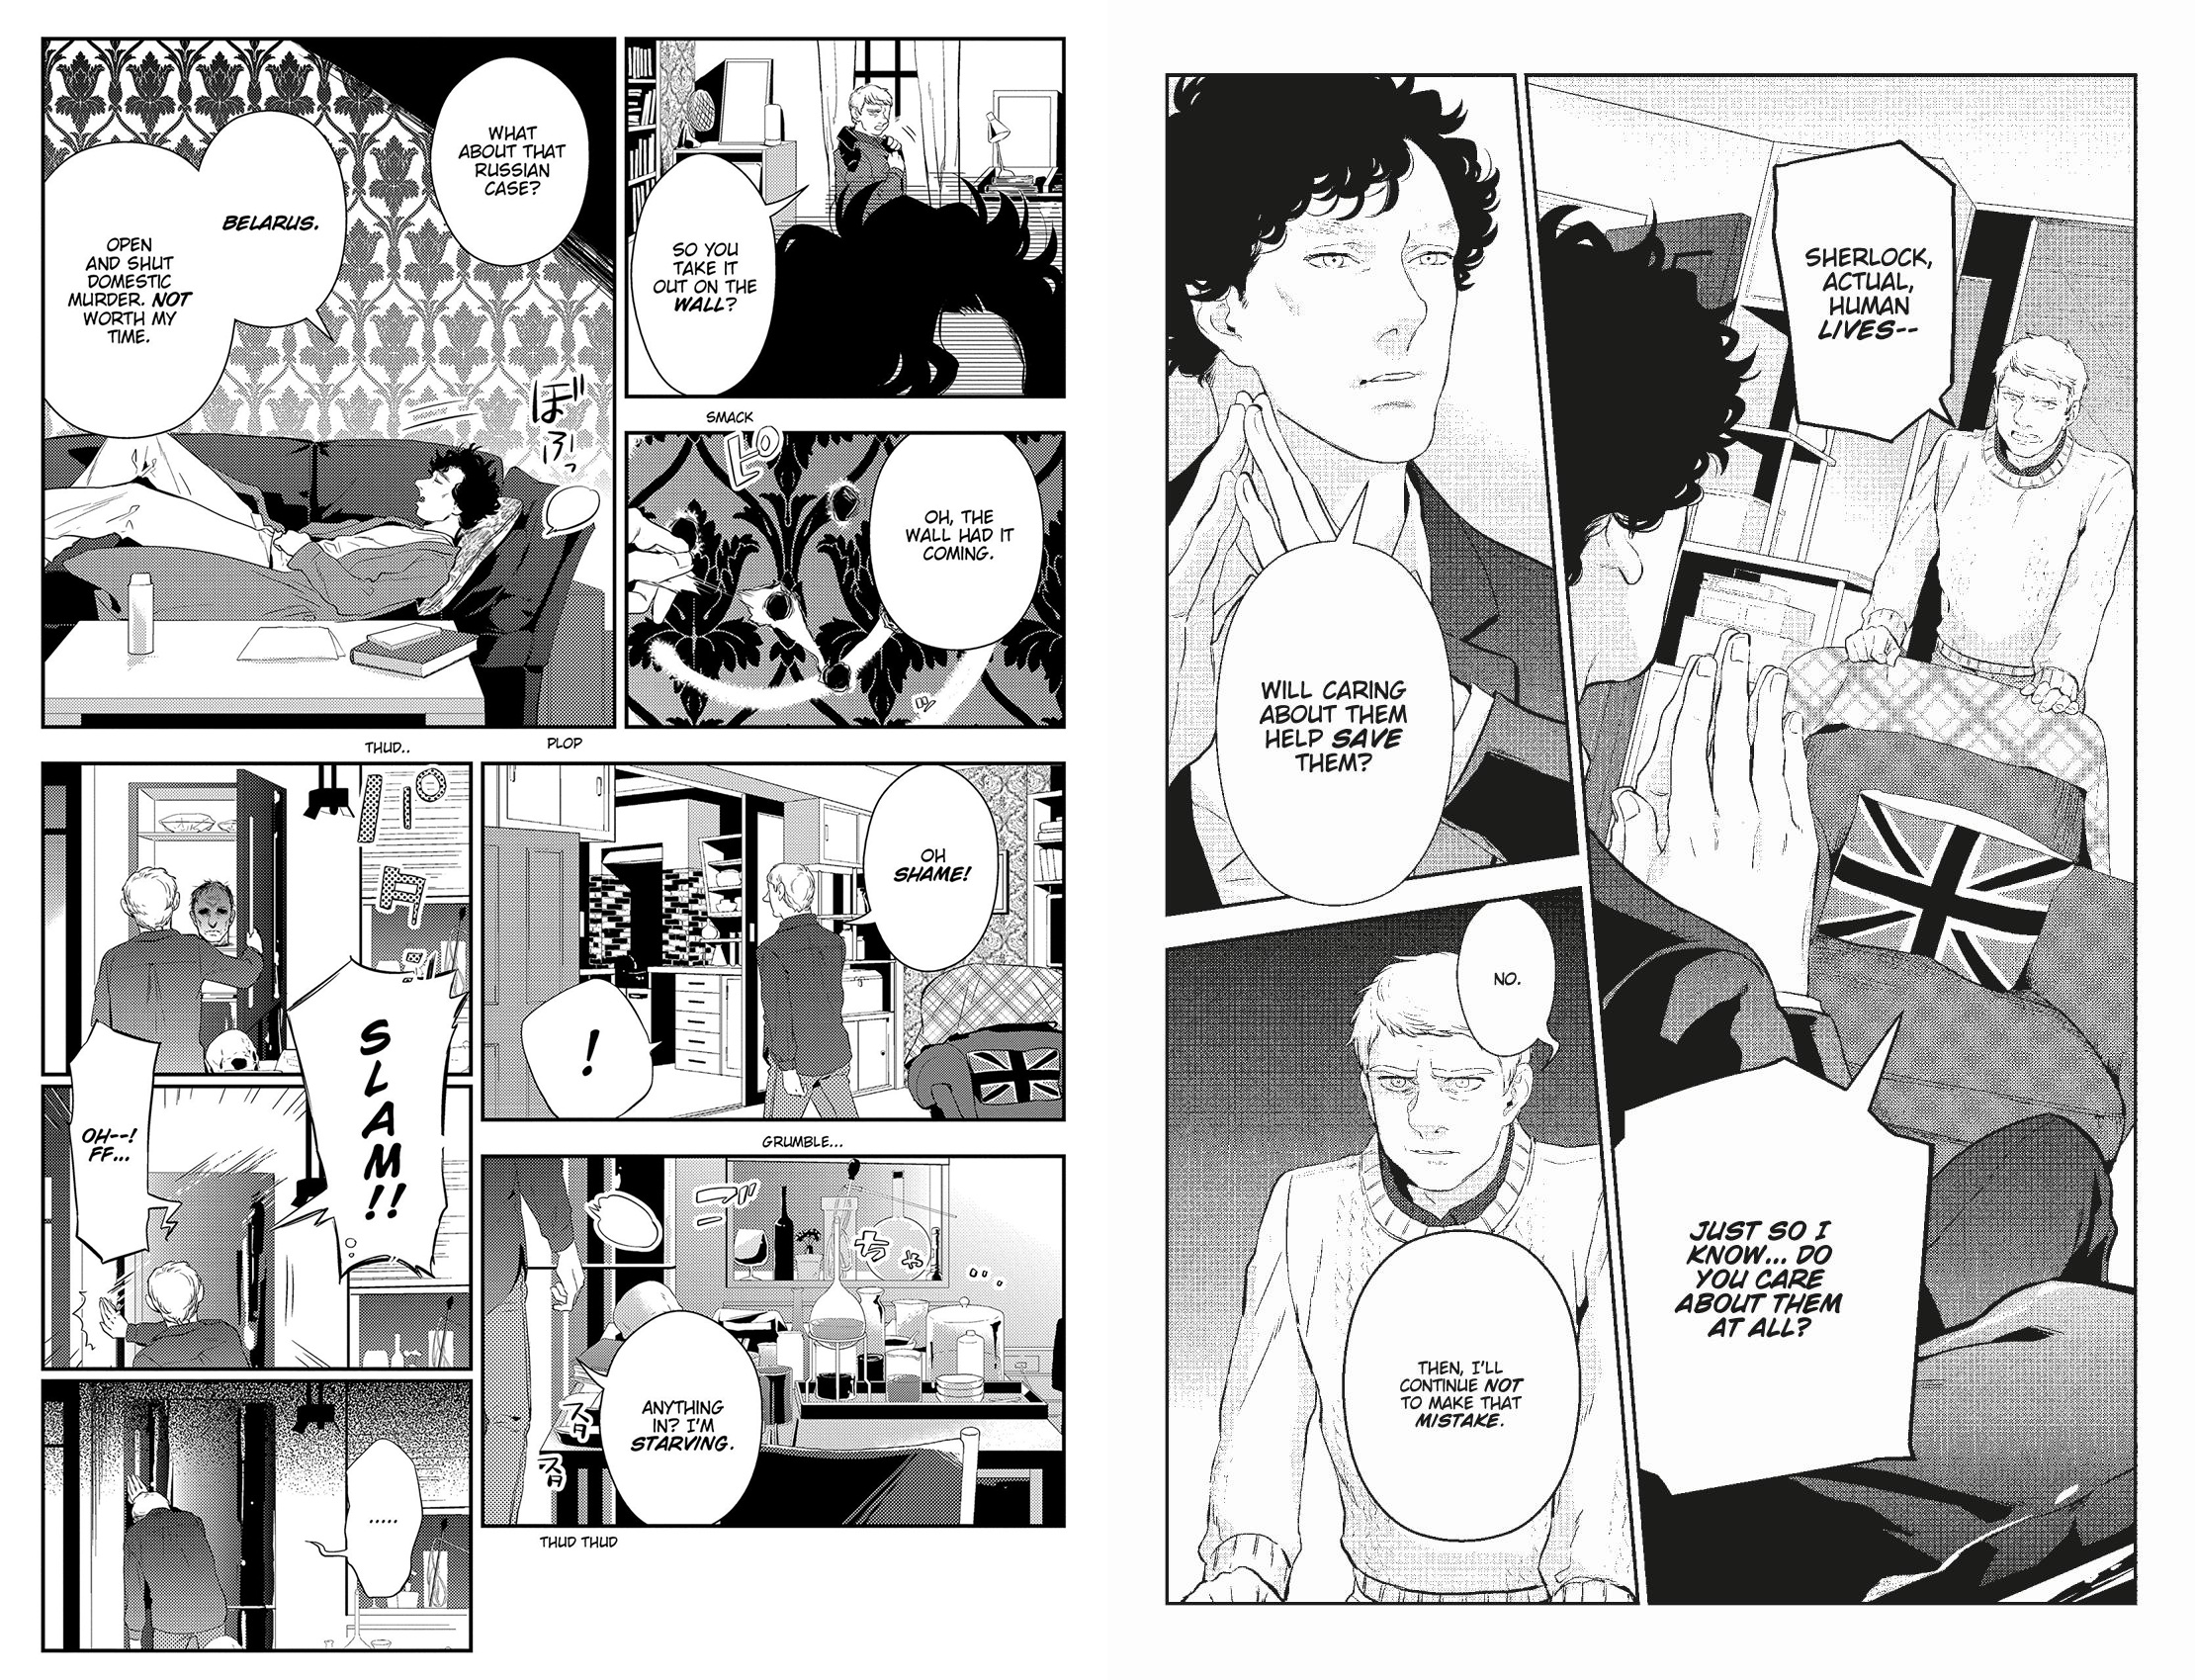 Sherlock The Compete Season One Manga review